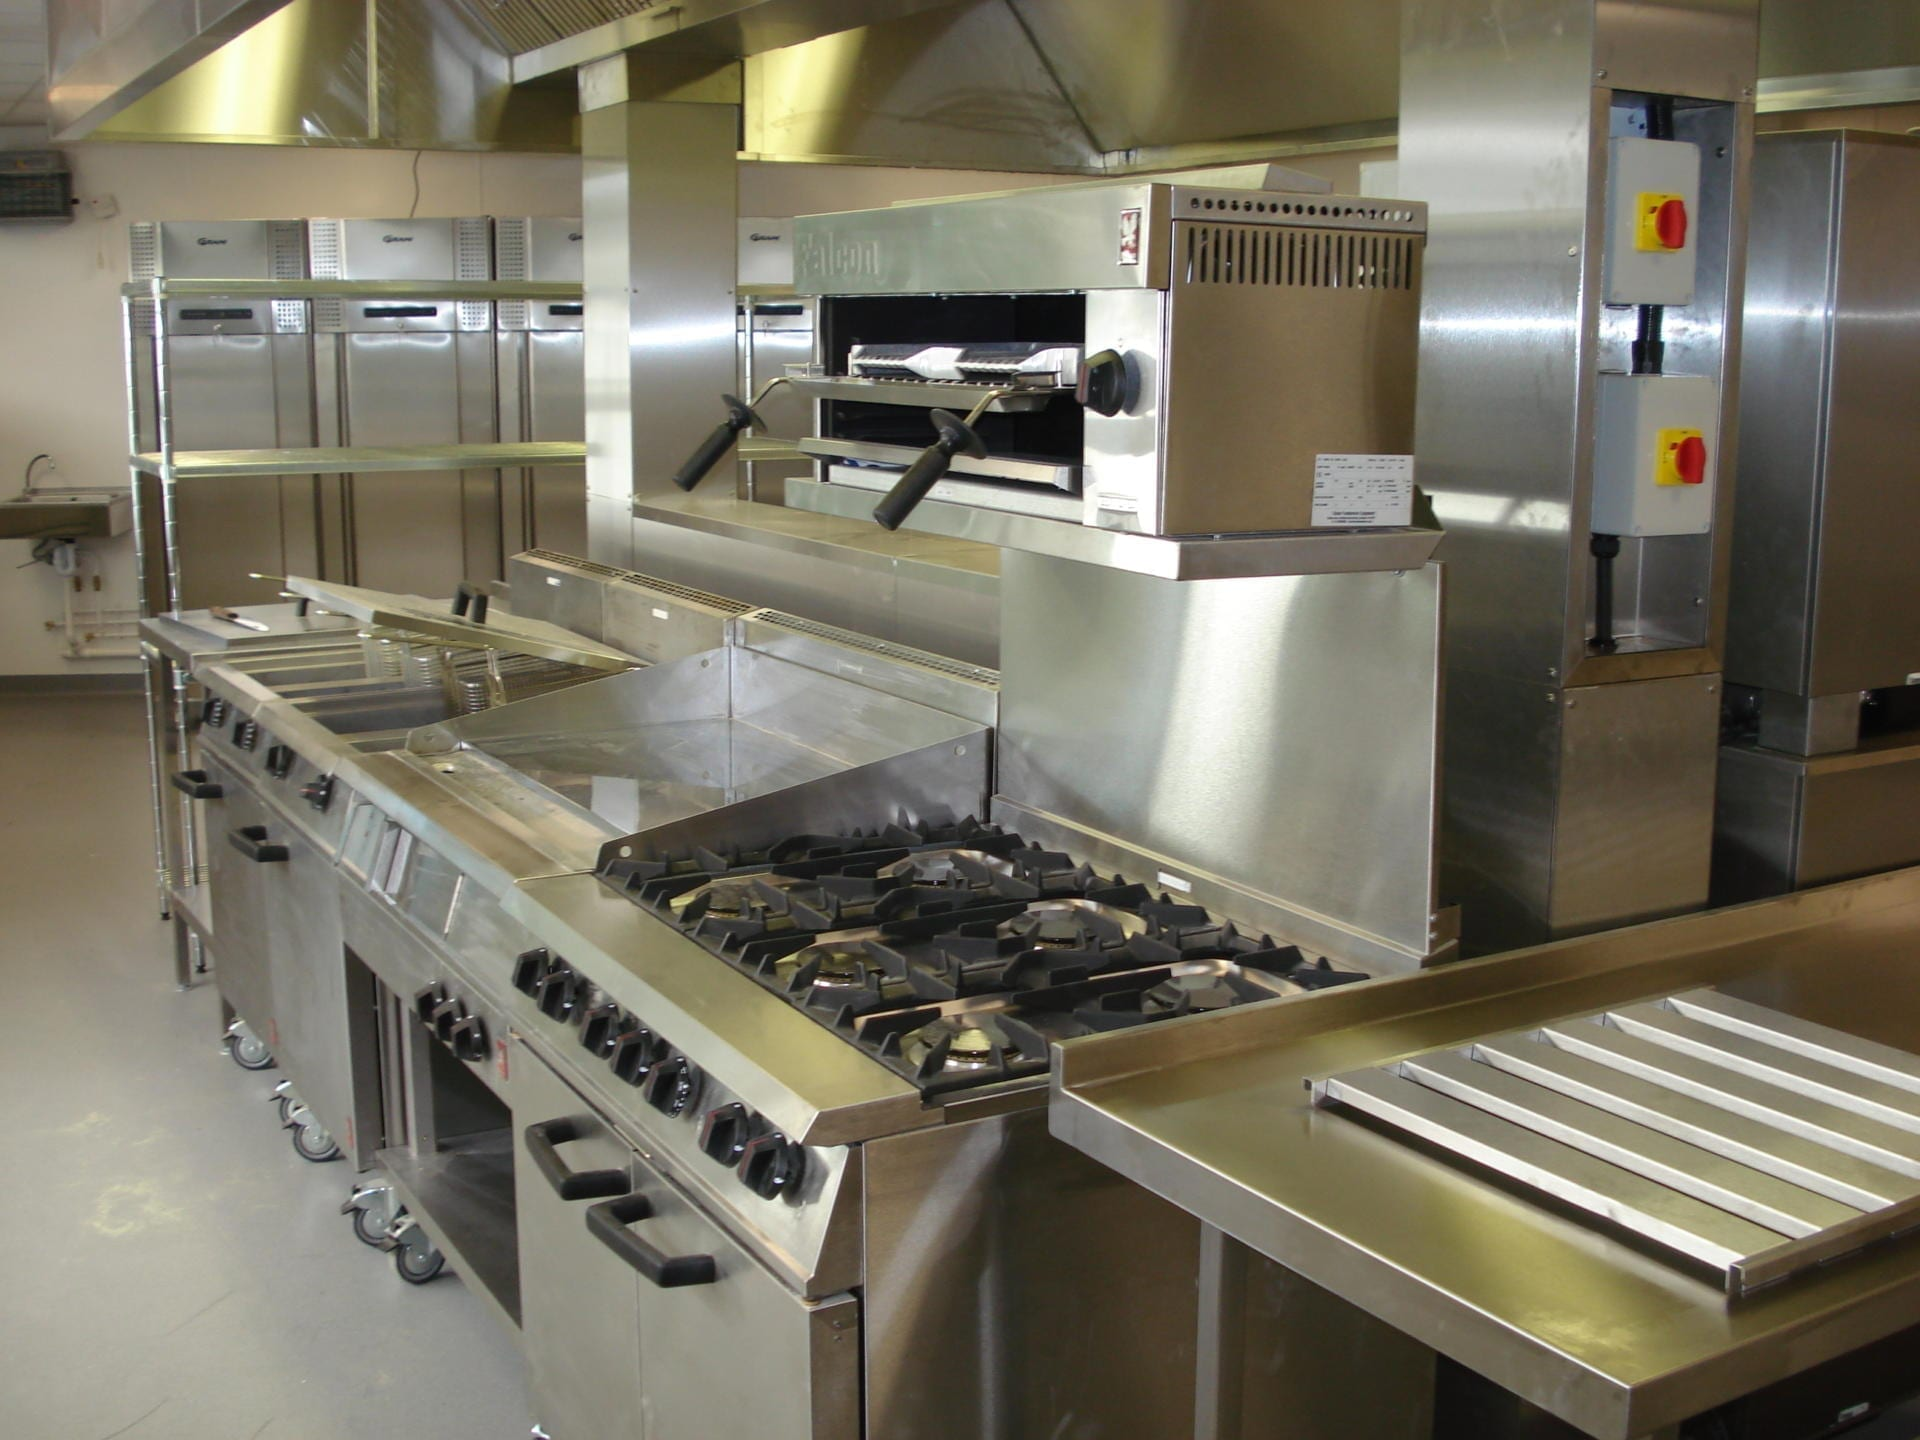 Gloucester-College-Gloucester-Servery-Stainless-Steel-fabrication-cooking-Foodtech-teaching-spacecatering_5